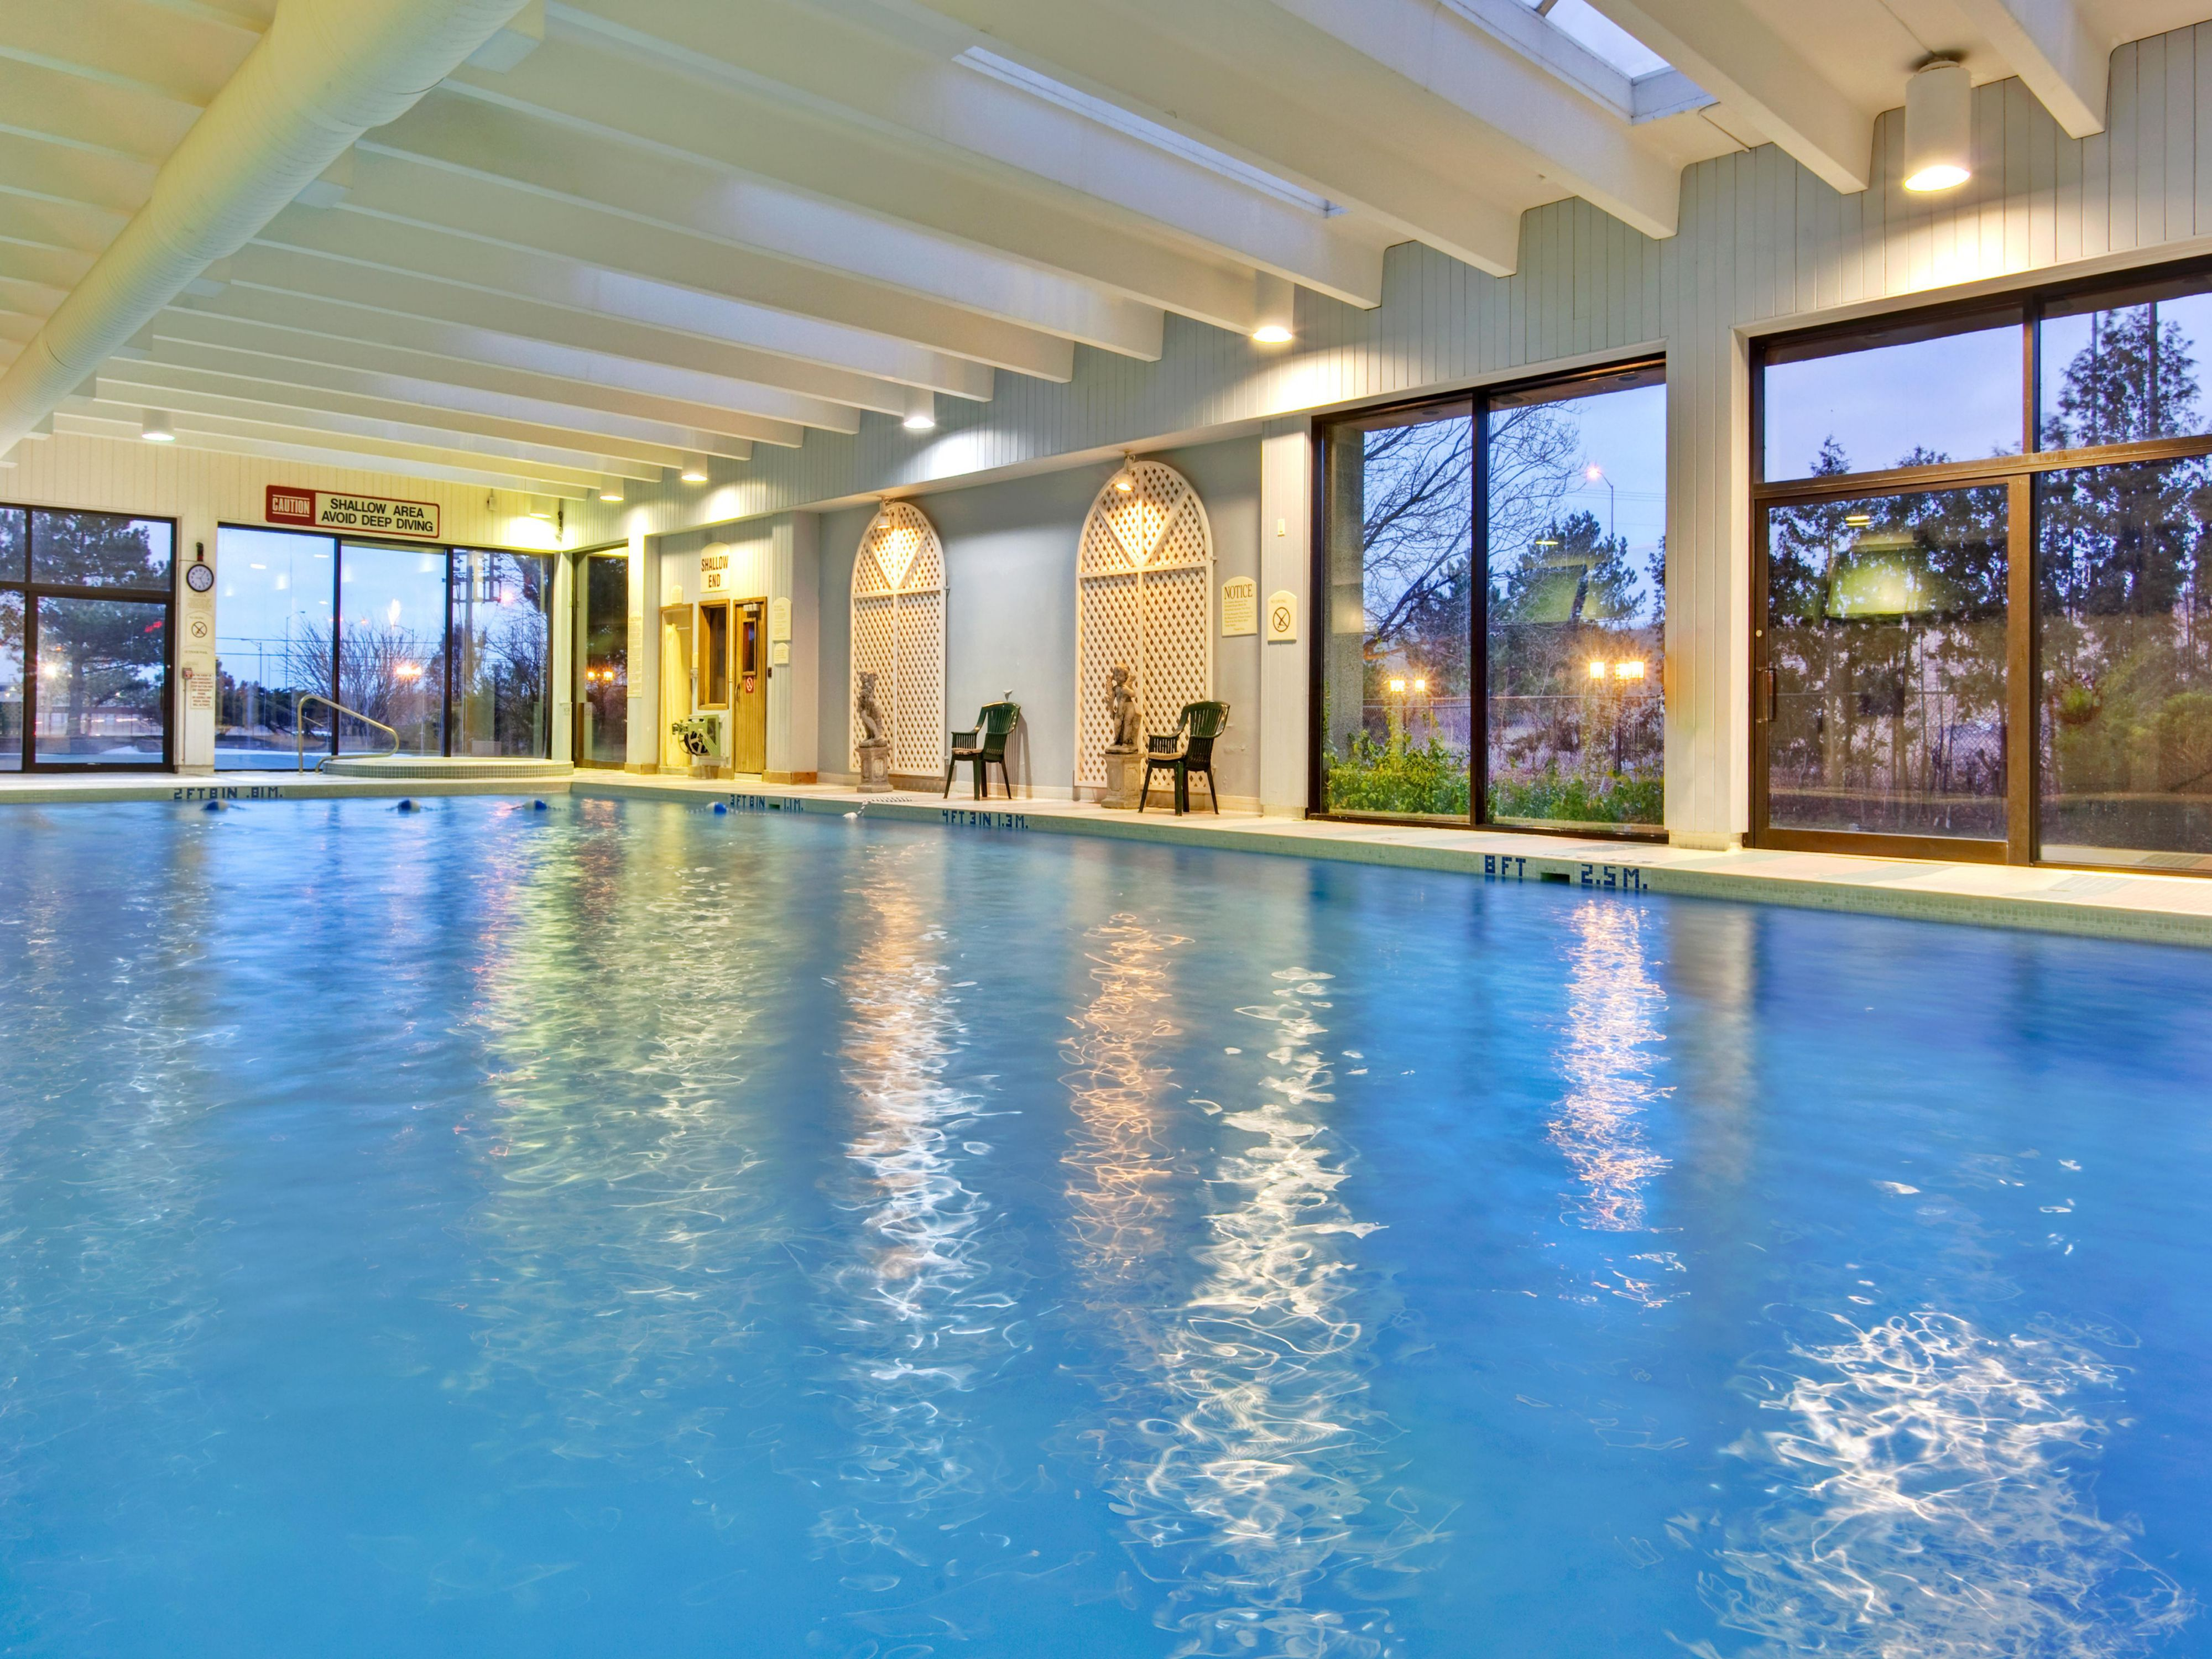 Rejuvenate in our large indoor heated pool. Open daily